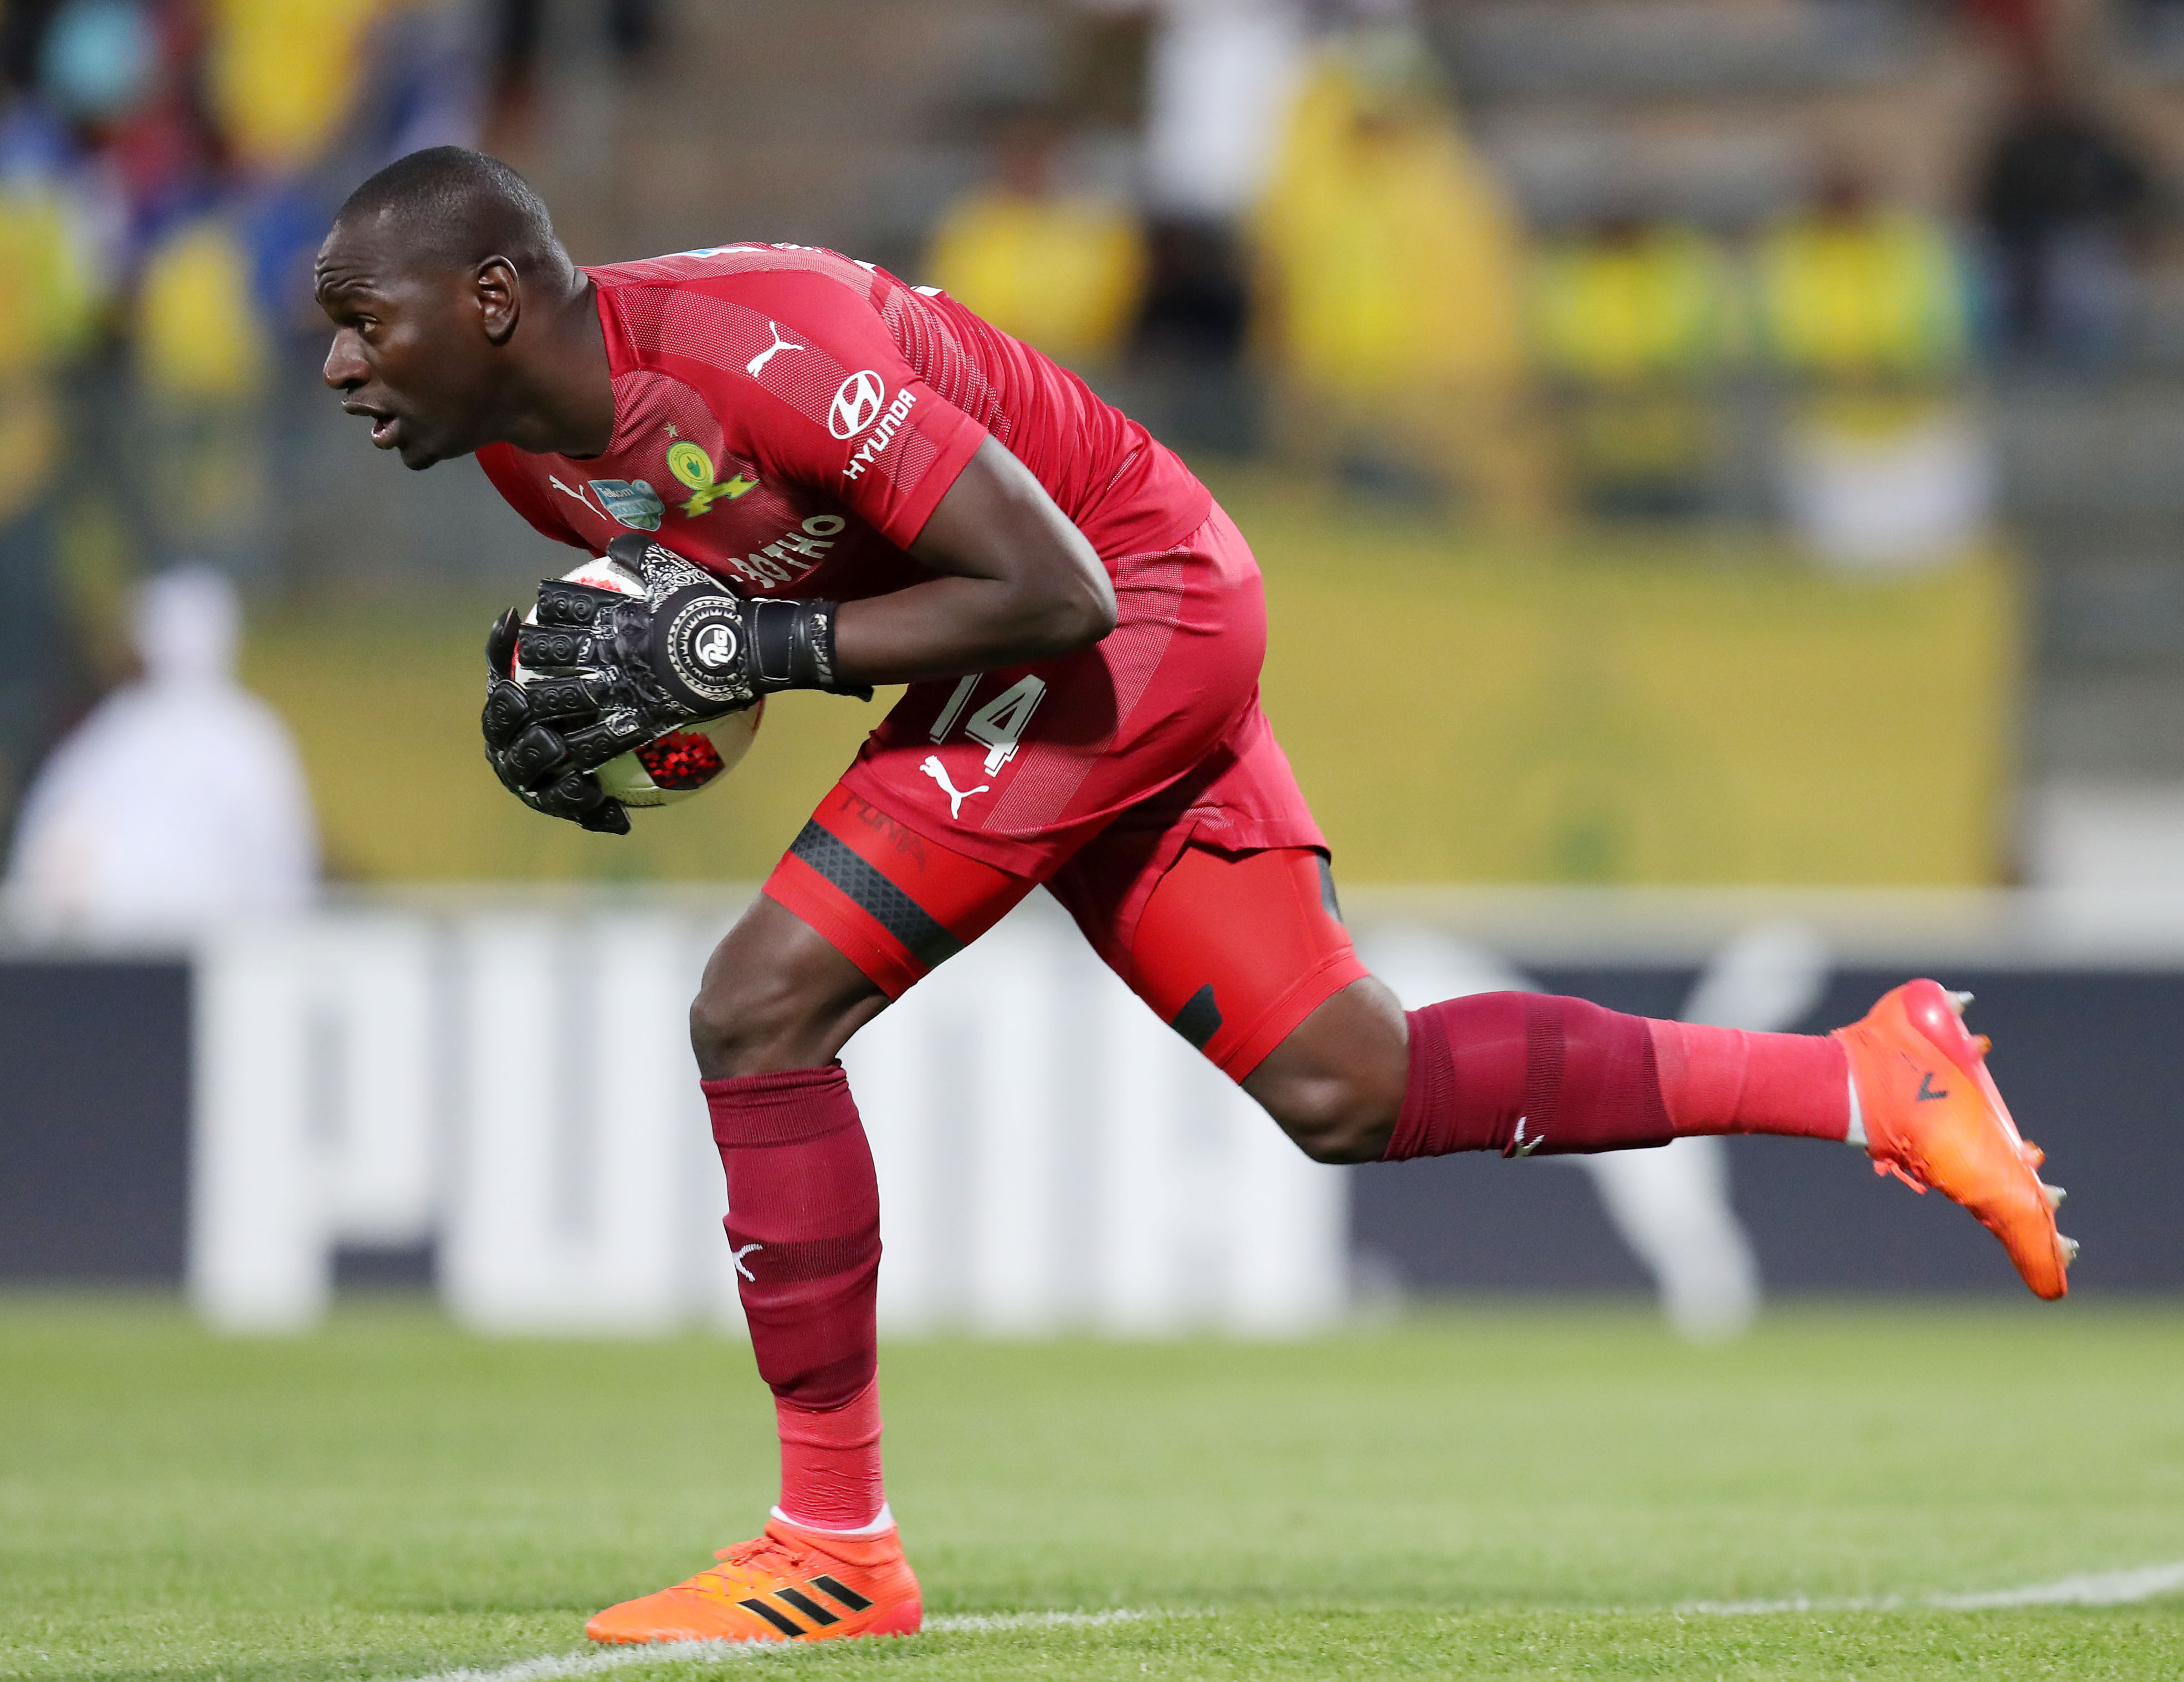 Uganda & Sundowns' Onyango Listed Alongside De Gea, Buffon in Best in the World